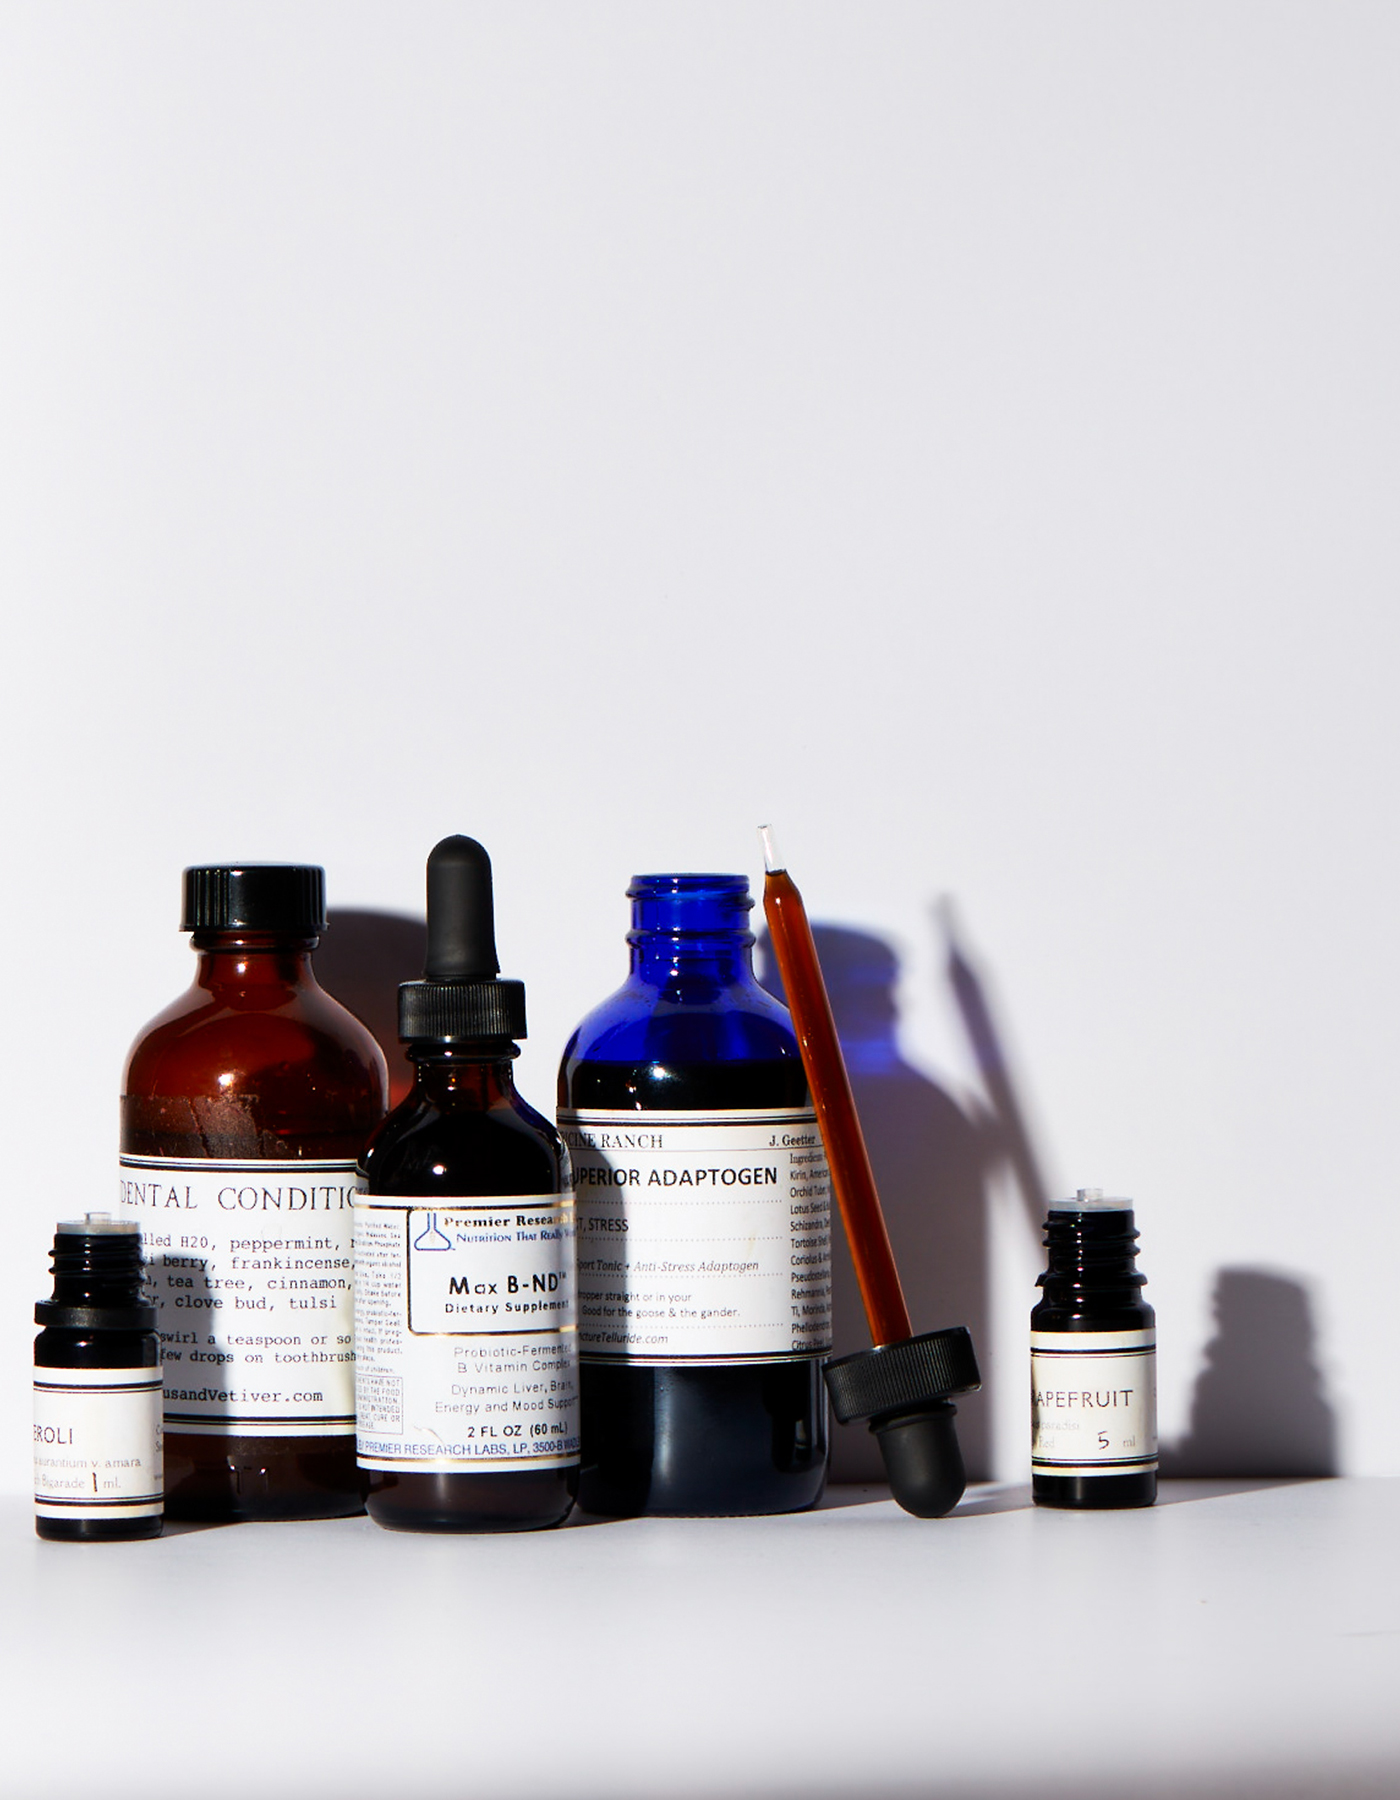 The Most Effective Clean Beauty Ingredients | justBOBBI